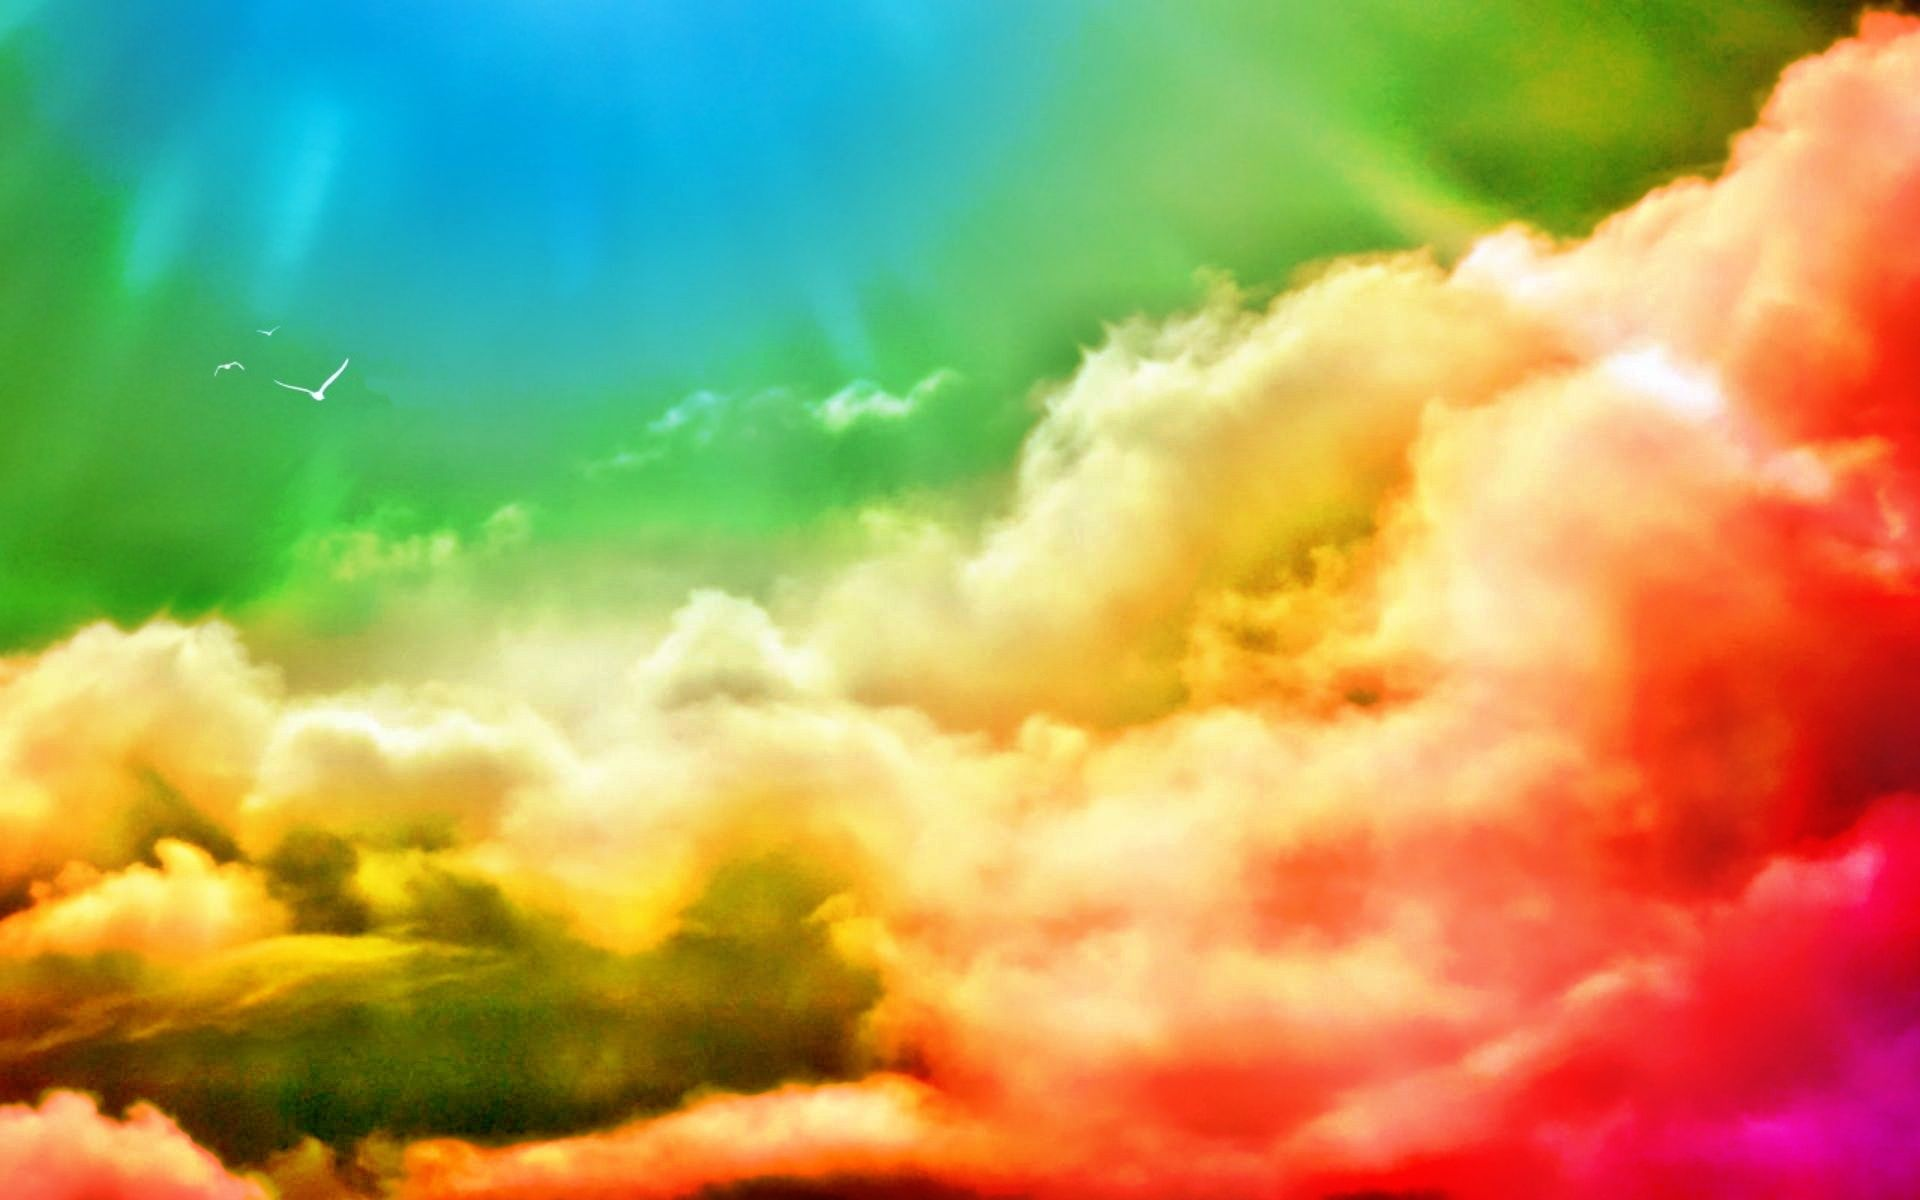 Colored Clouds The Chakras & Chakra Balancing Meditation - Deidre Madsen